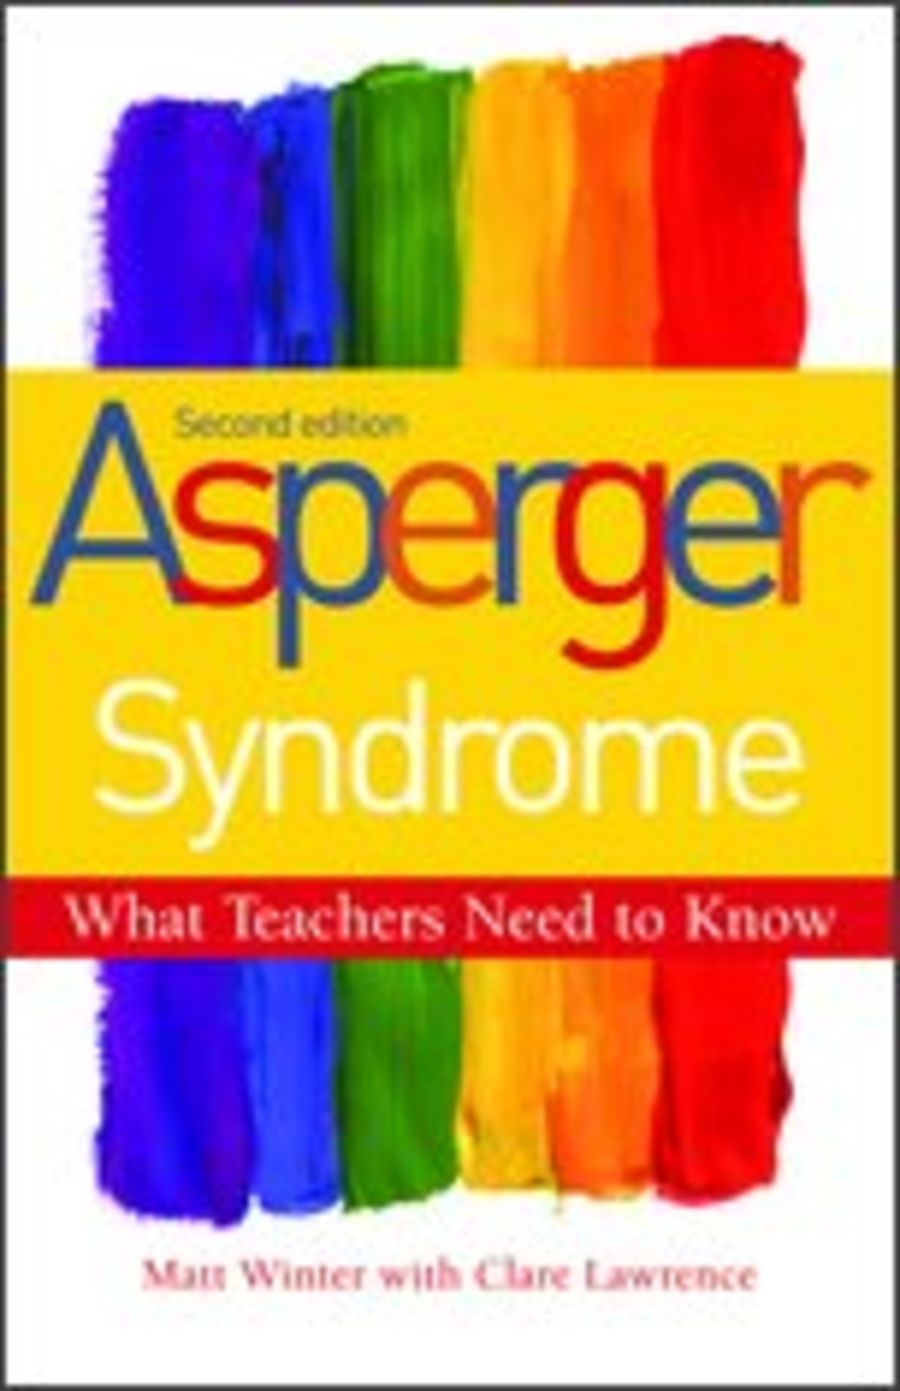 Asperger Syndrome: What Teachers Need to Know